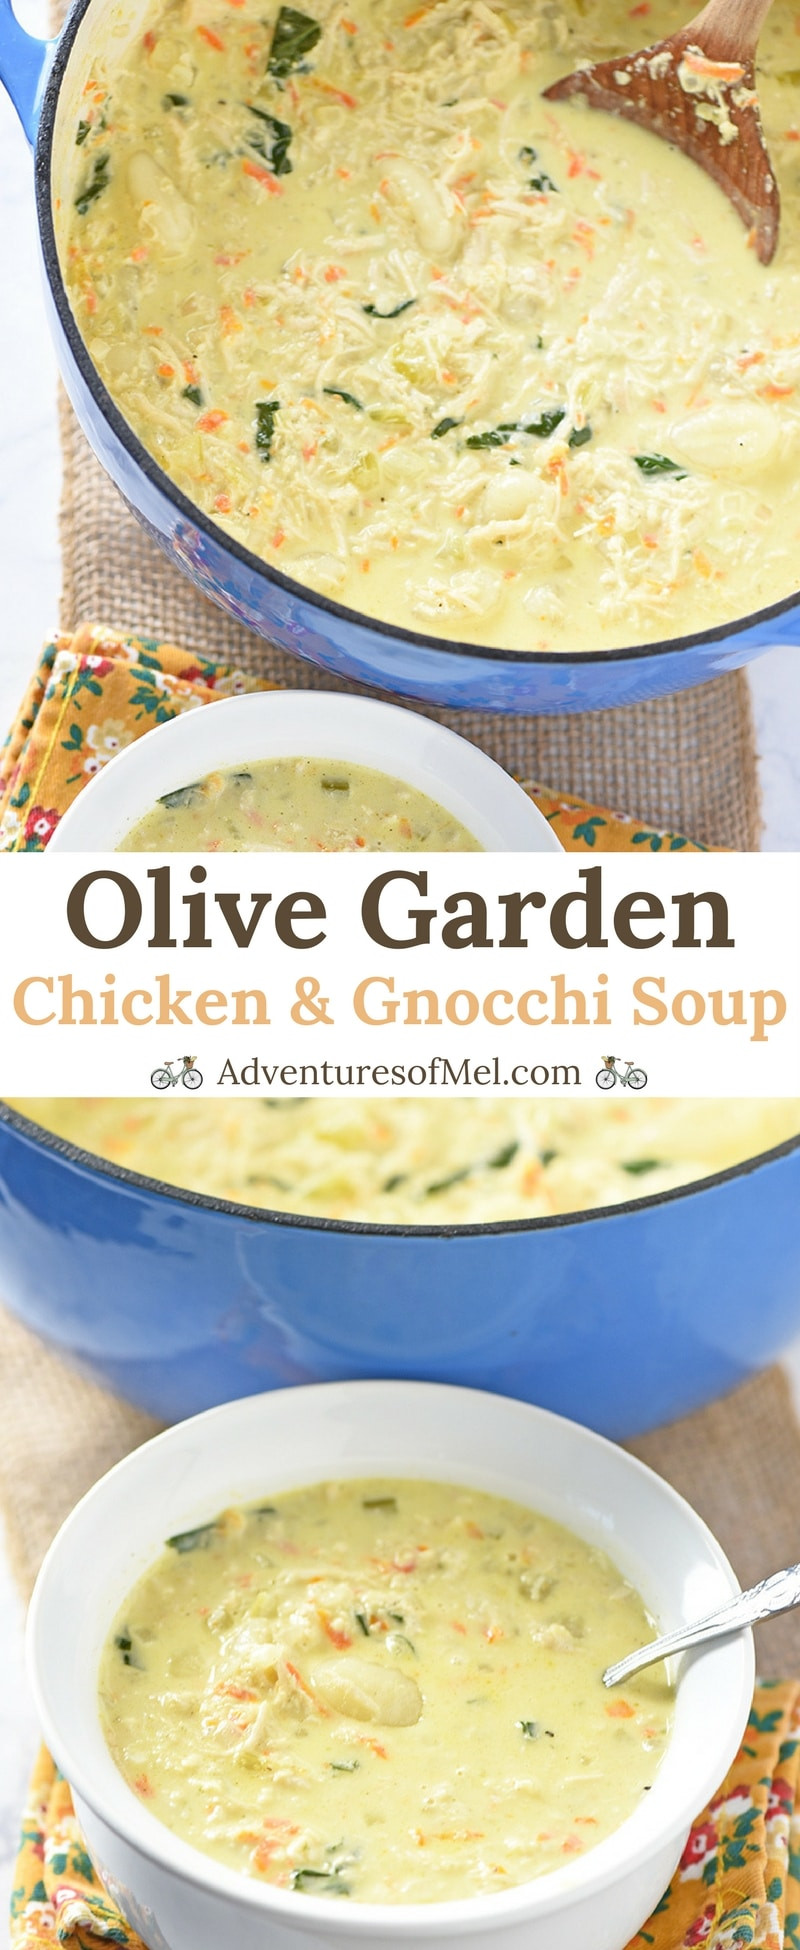 Chicken And Gnocchi Soup Olive Garden  Olive Garden Chicken and Gnocchi Soup Copycat